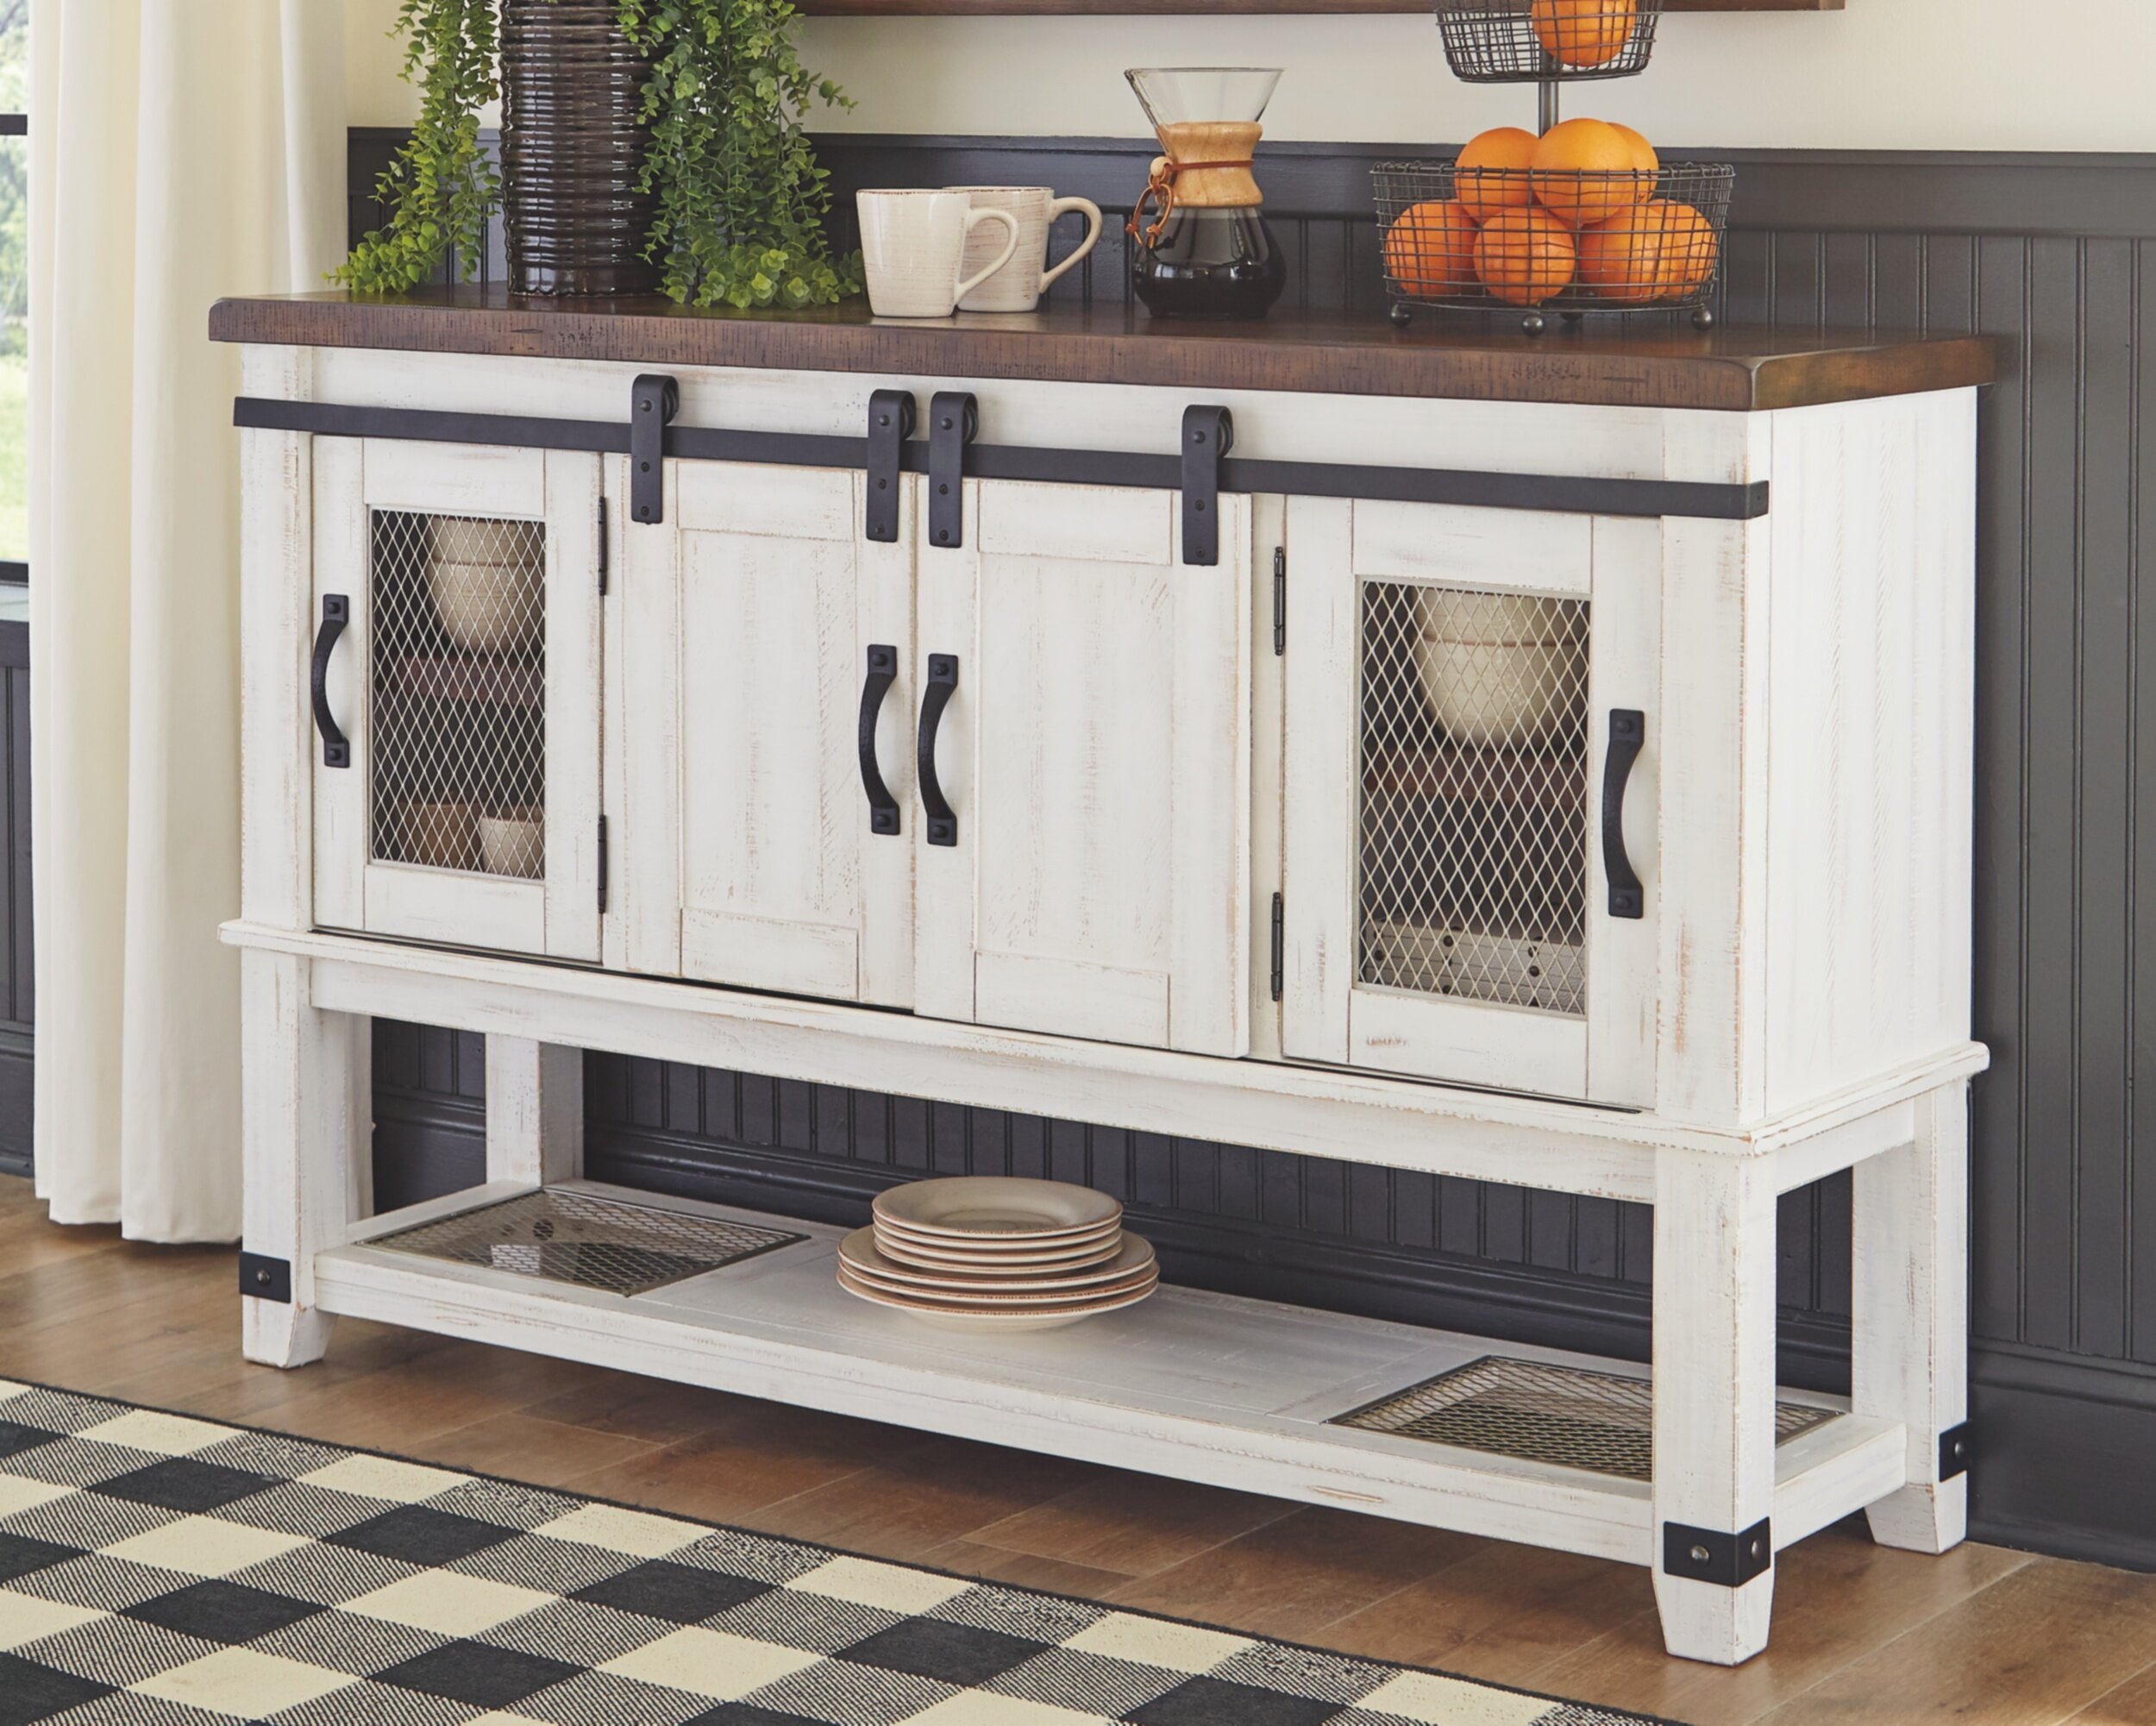 Gracie Oaks Jaydin Dining Room Buffet Table | Wayfair